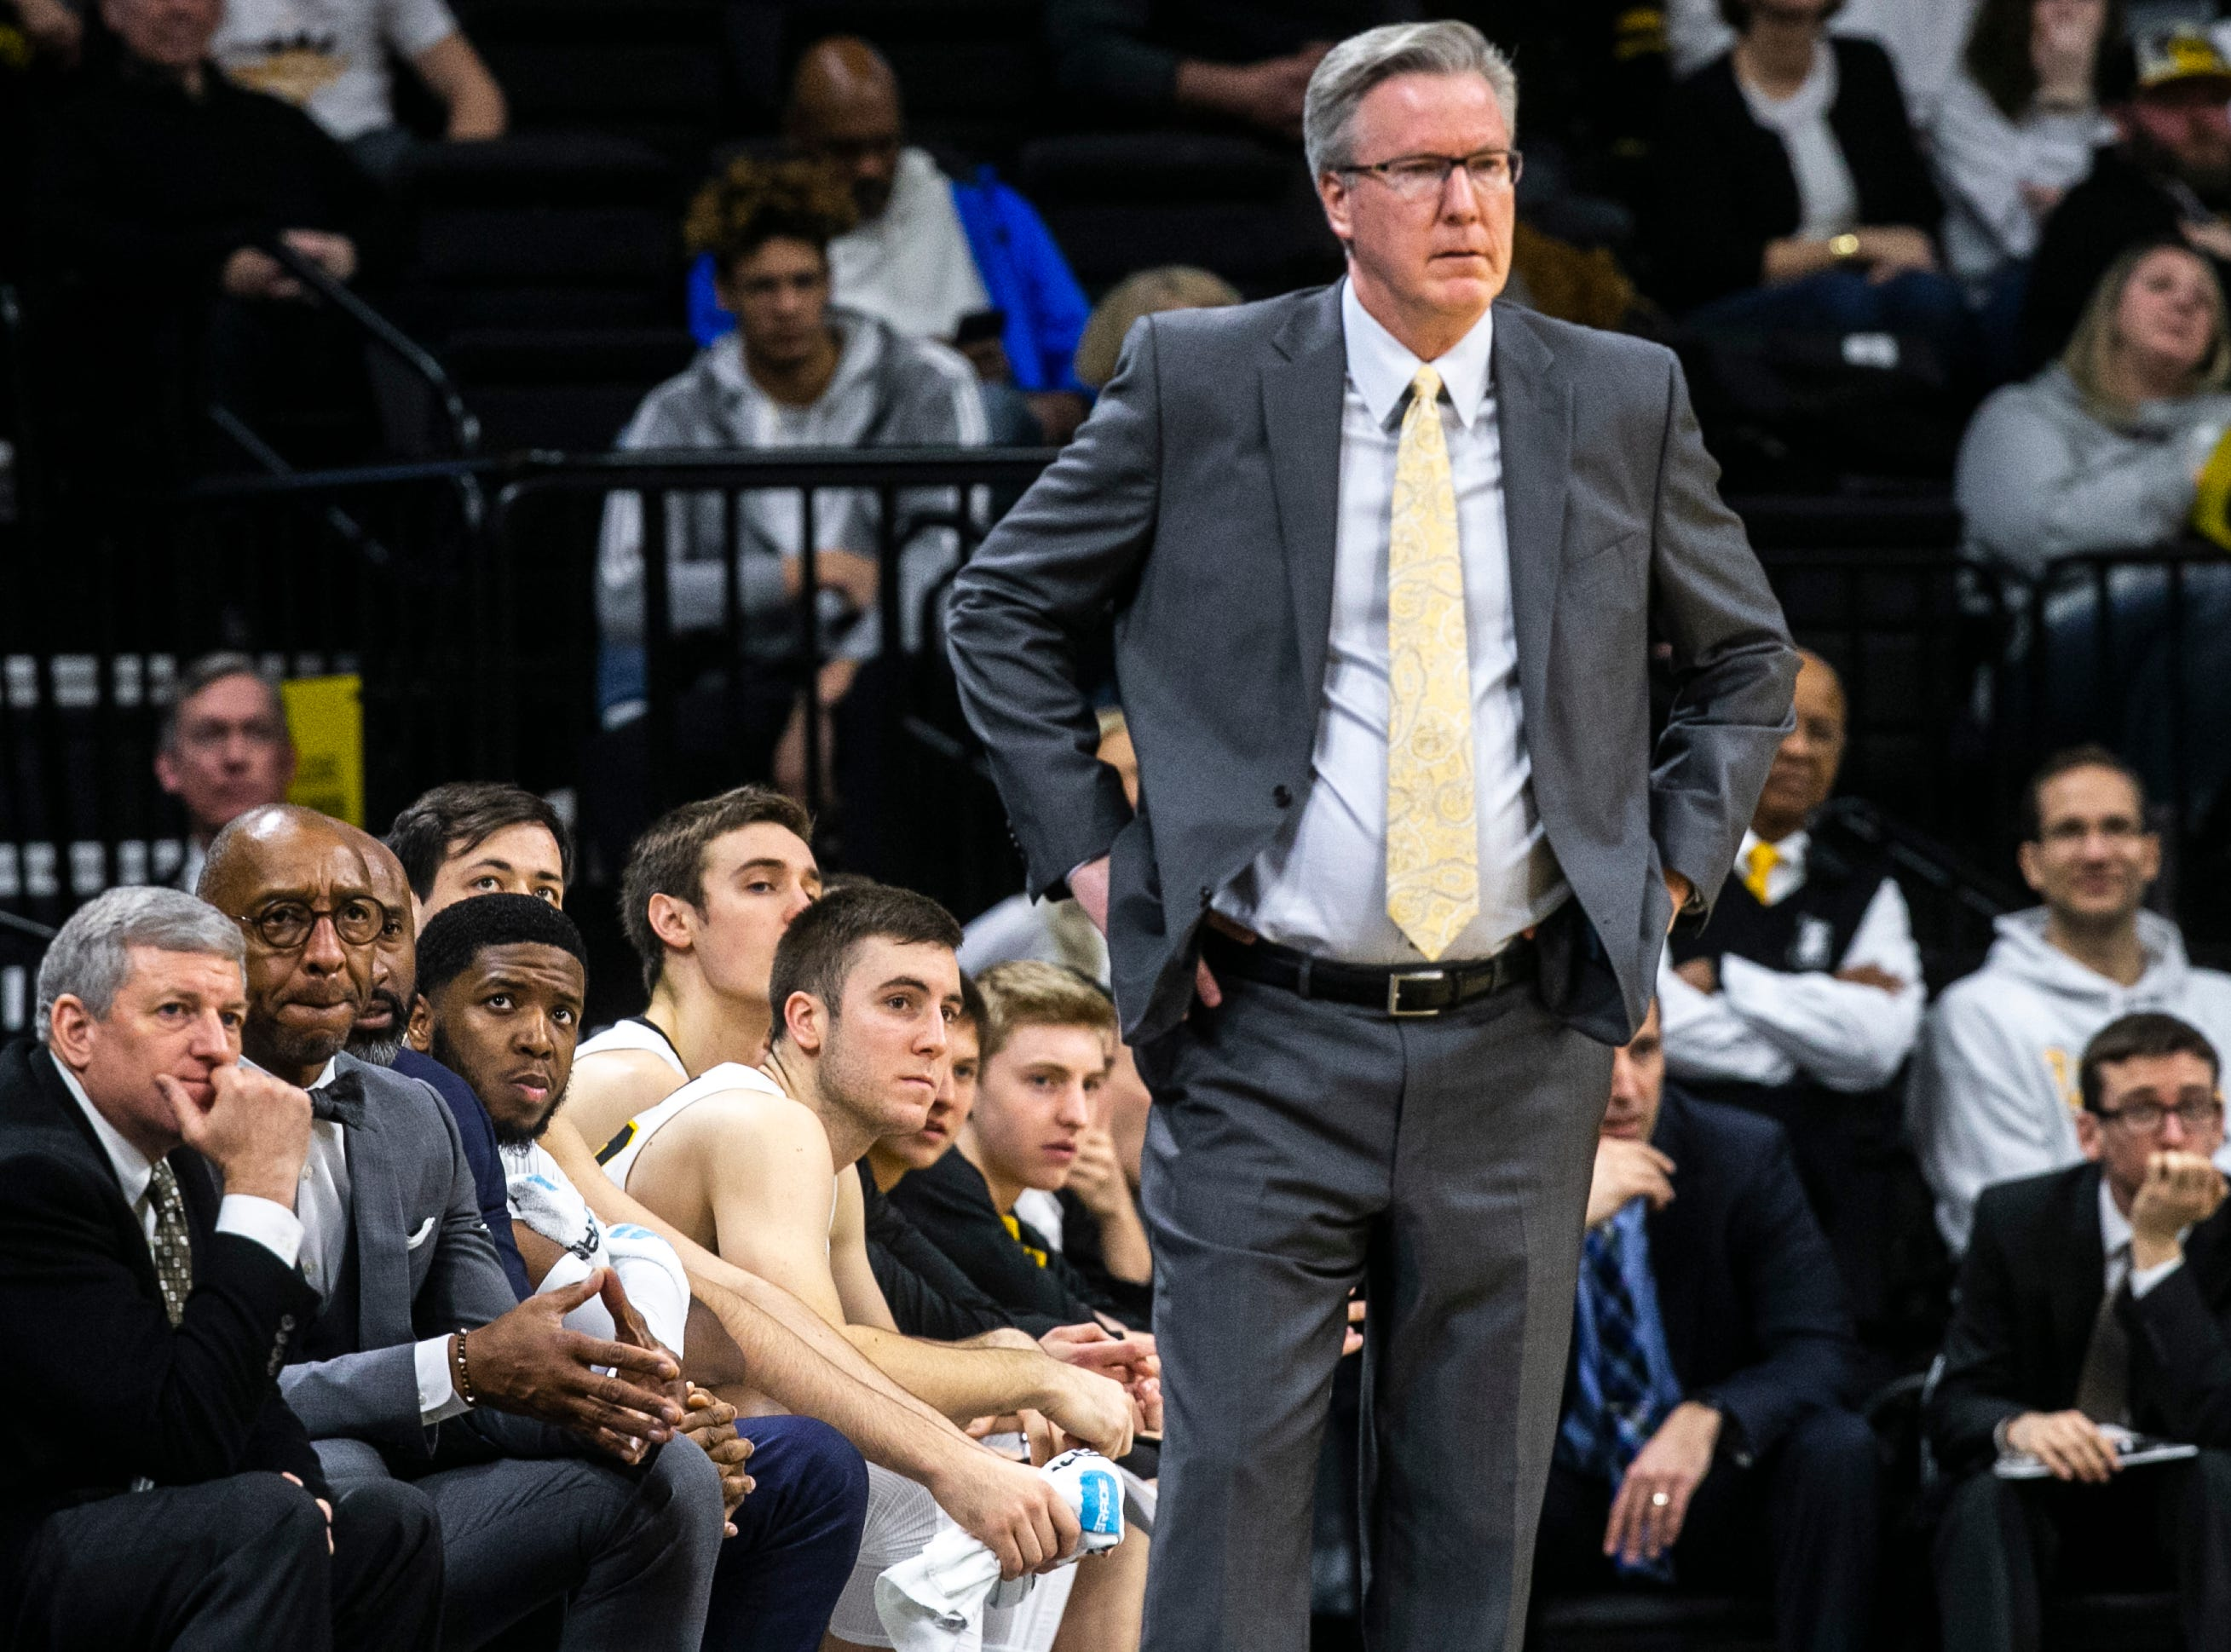 Iowa guard Isaiah Moss (third from left) looks on from the bench while Iowa men's basketball head coach Fran McCaffery stands along the baseline during a NCAA Big Ten Conference men's basketball game on Sunday, Jan. 20, 2019, at Carver-Hawkeye Arena in Iowa City, Iowa.